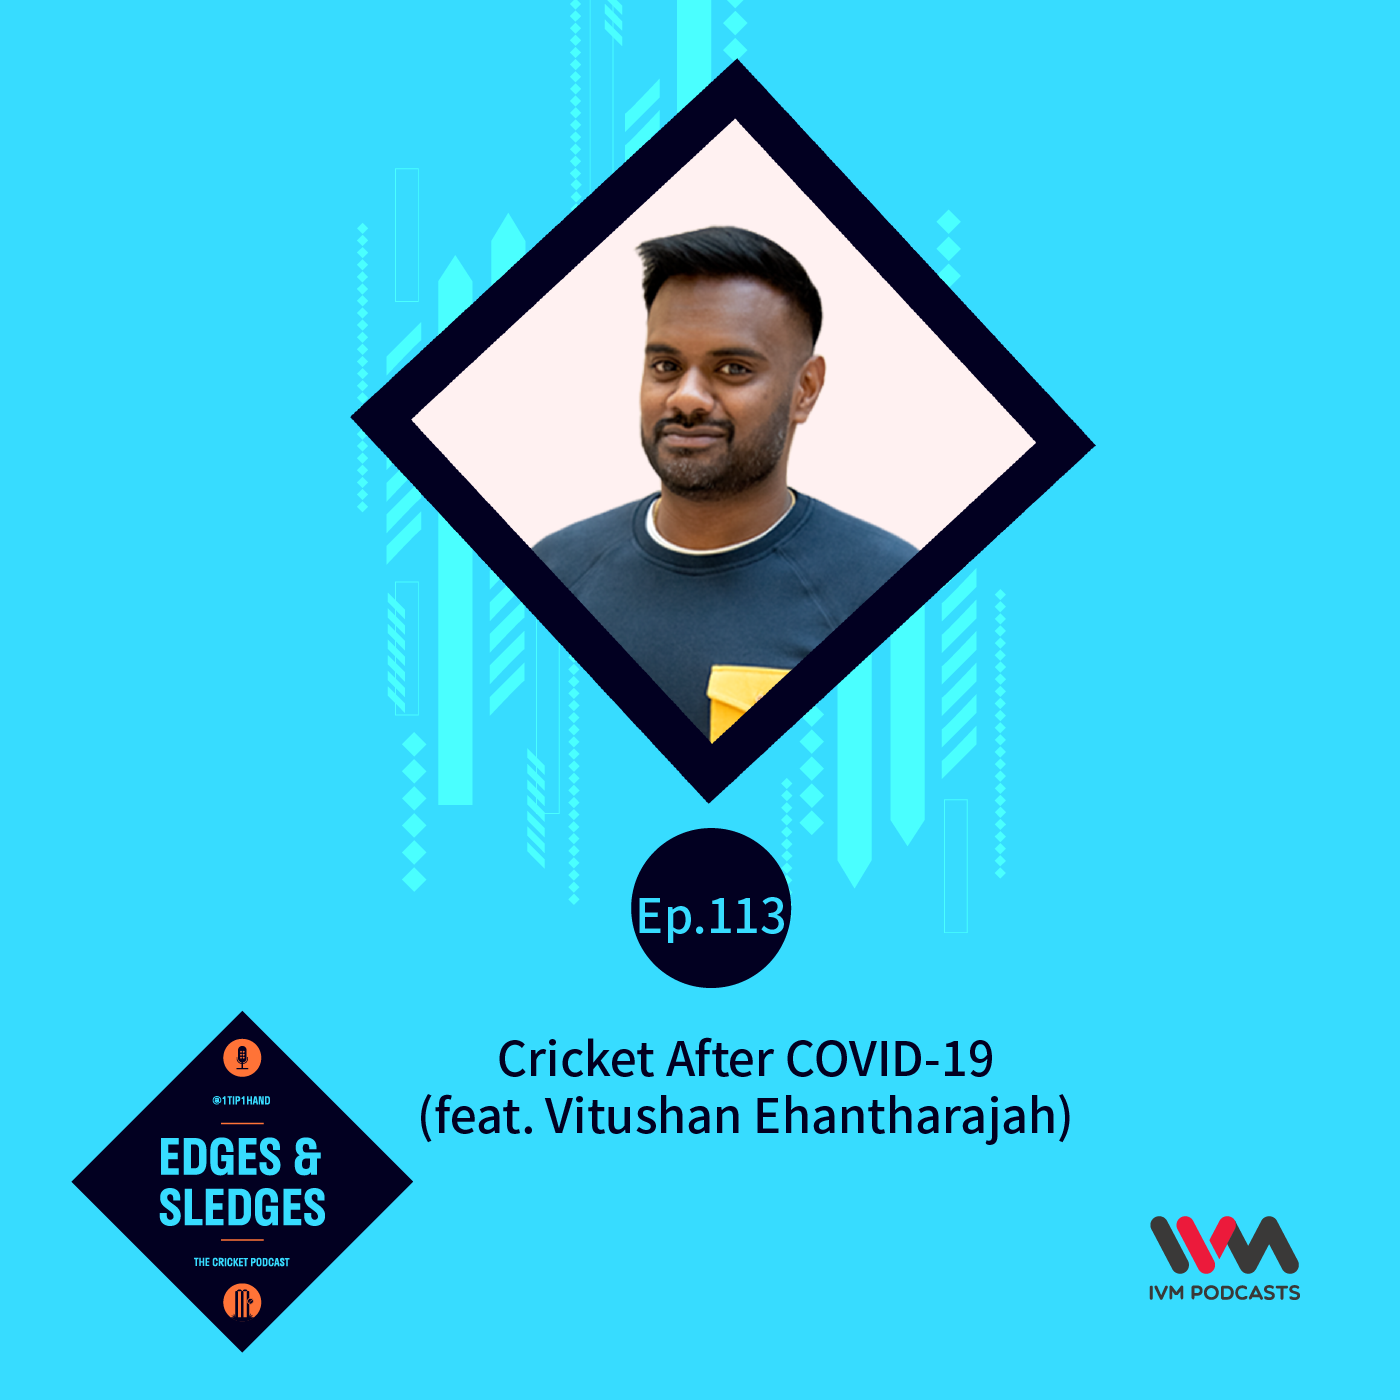 Ep. 113: Cricket After COVID-19 (feat. Vitushan Ehantharajah)